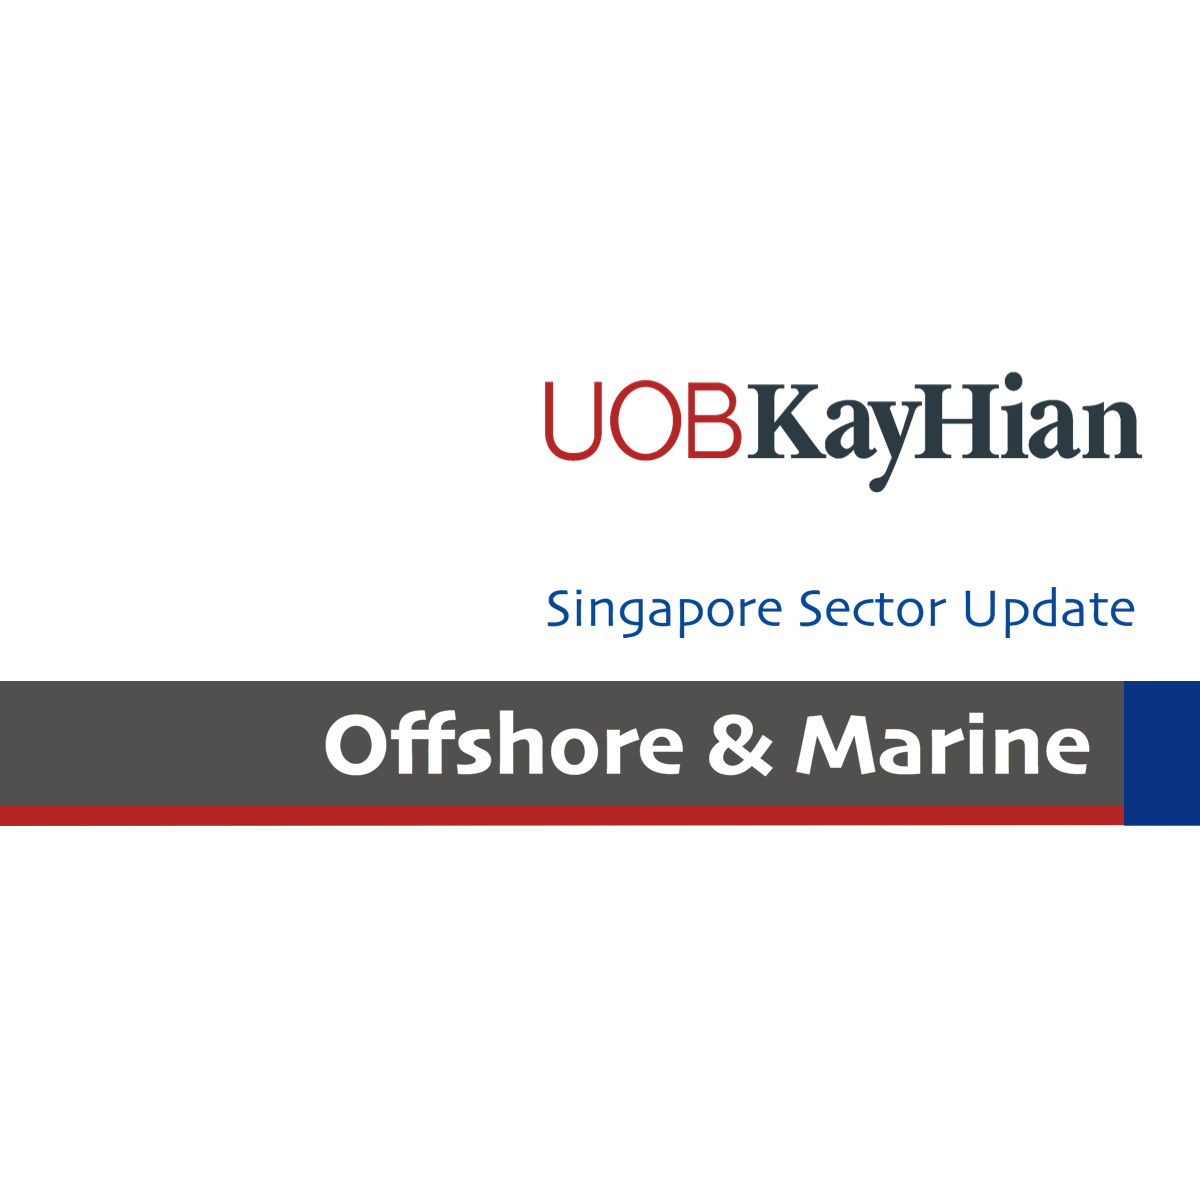 Offshore & Marine – Singapore - UOB Kay Hian 2017-03-10: Sector Remains Cashflow-stressed; Clear Survivors Emerge